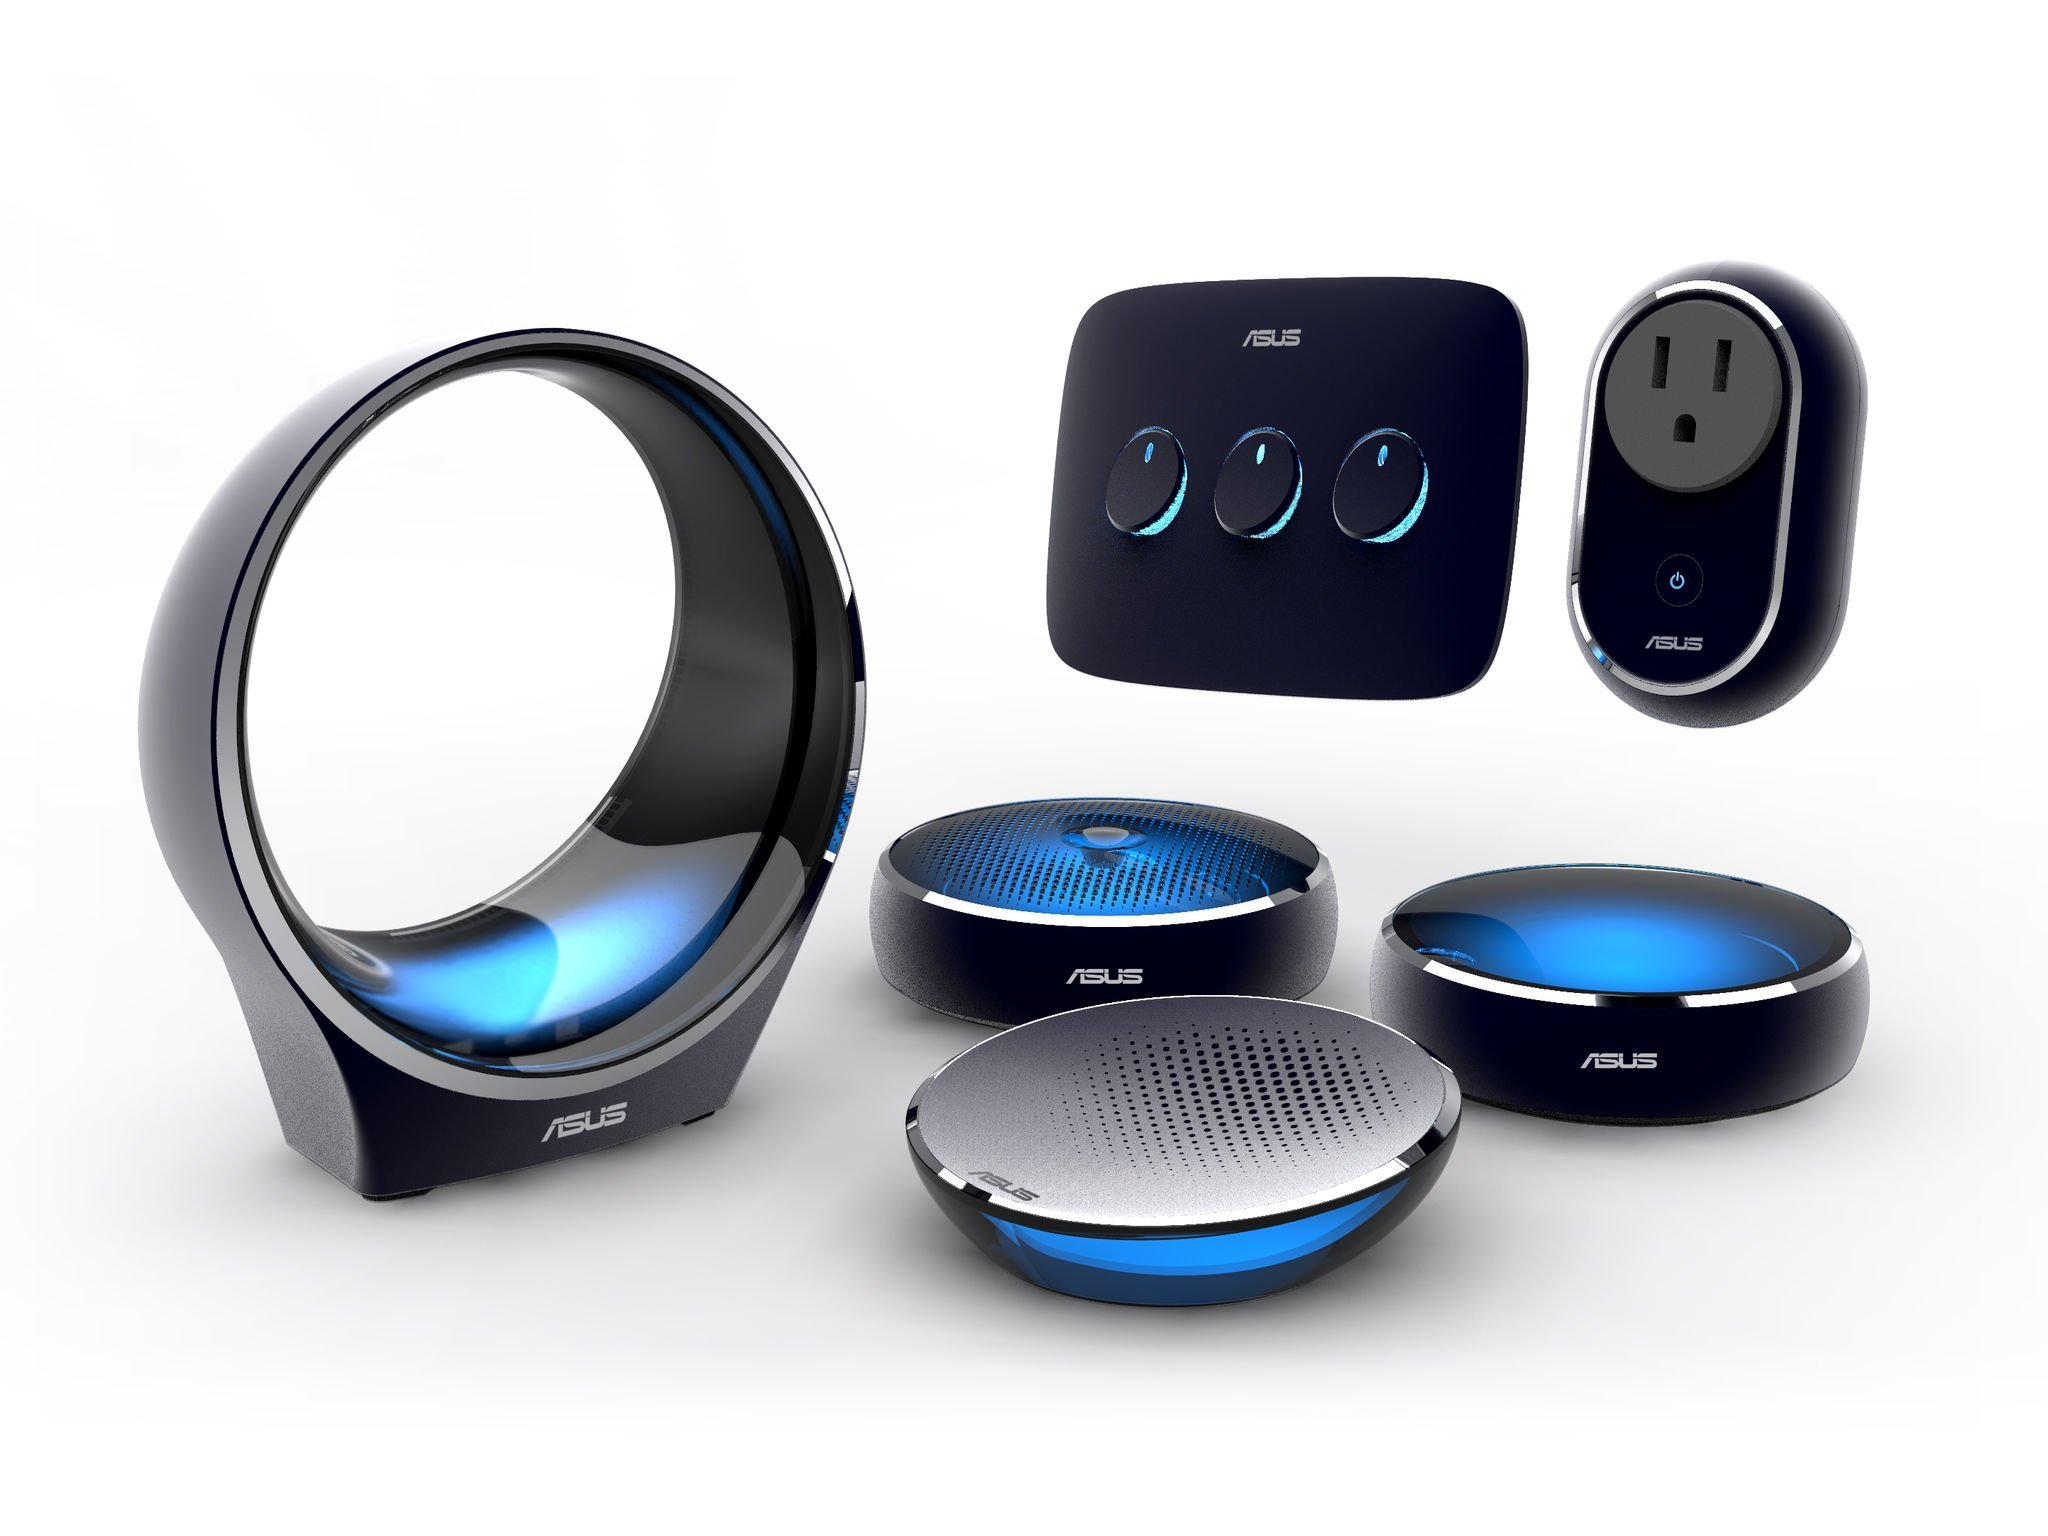 Asus Smart Home, une solution domotique esthétique